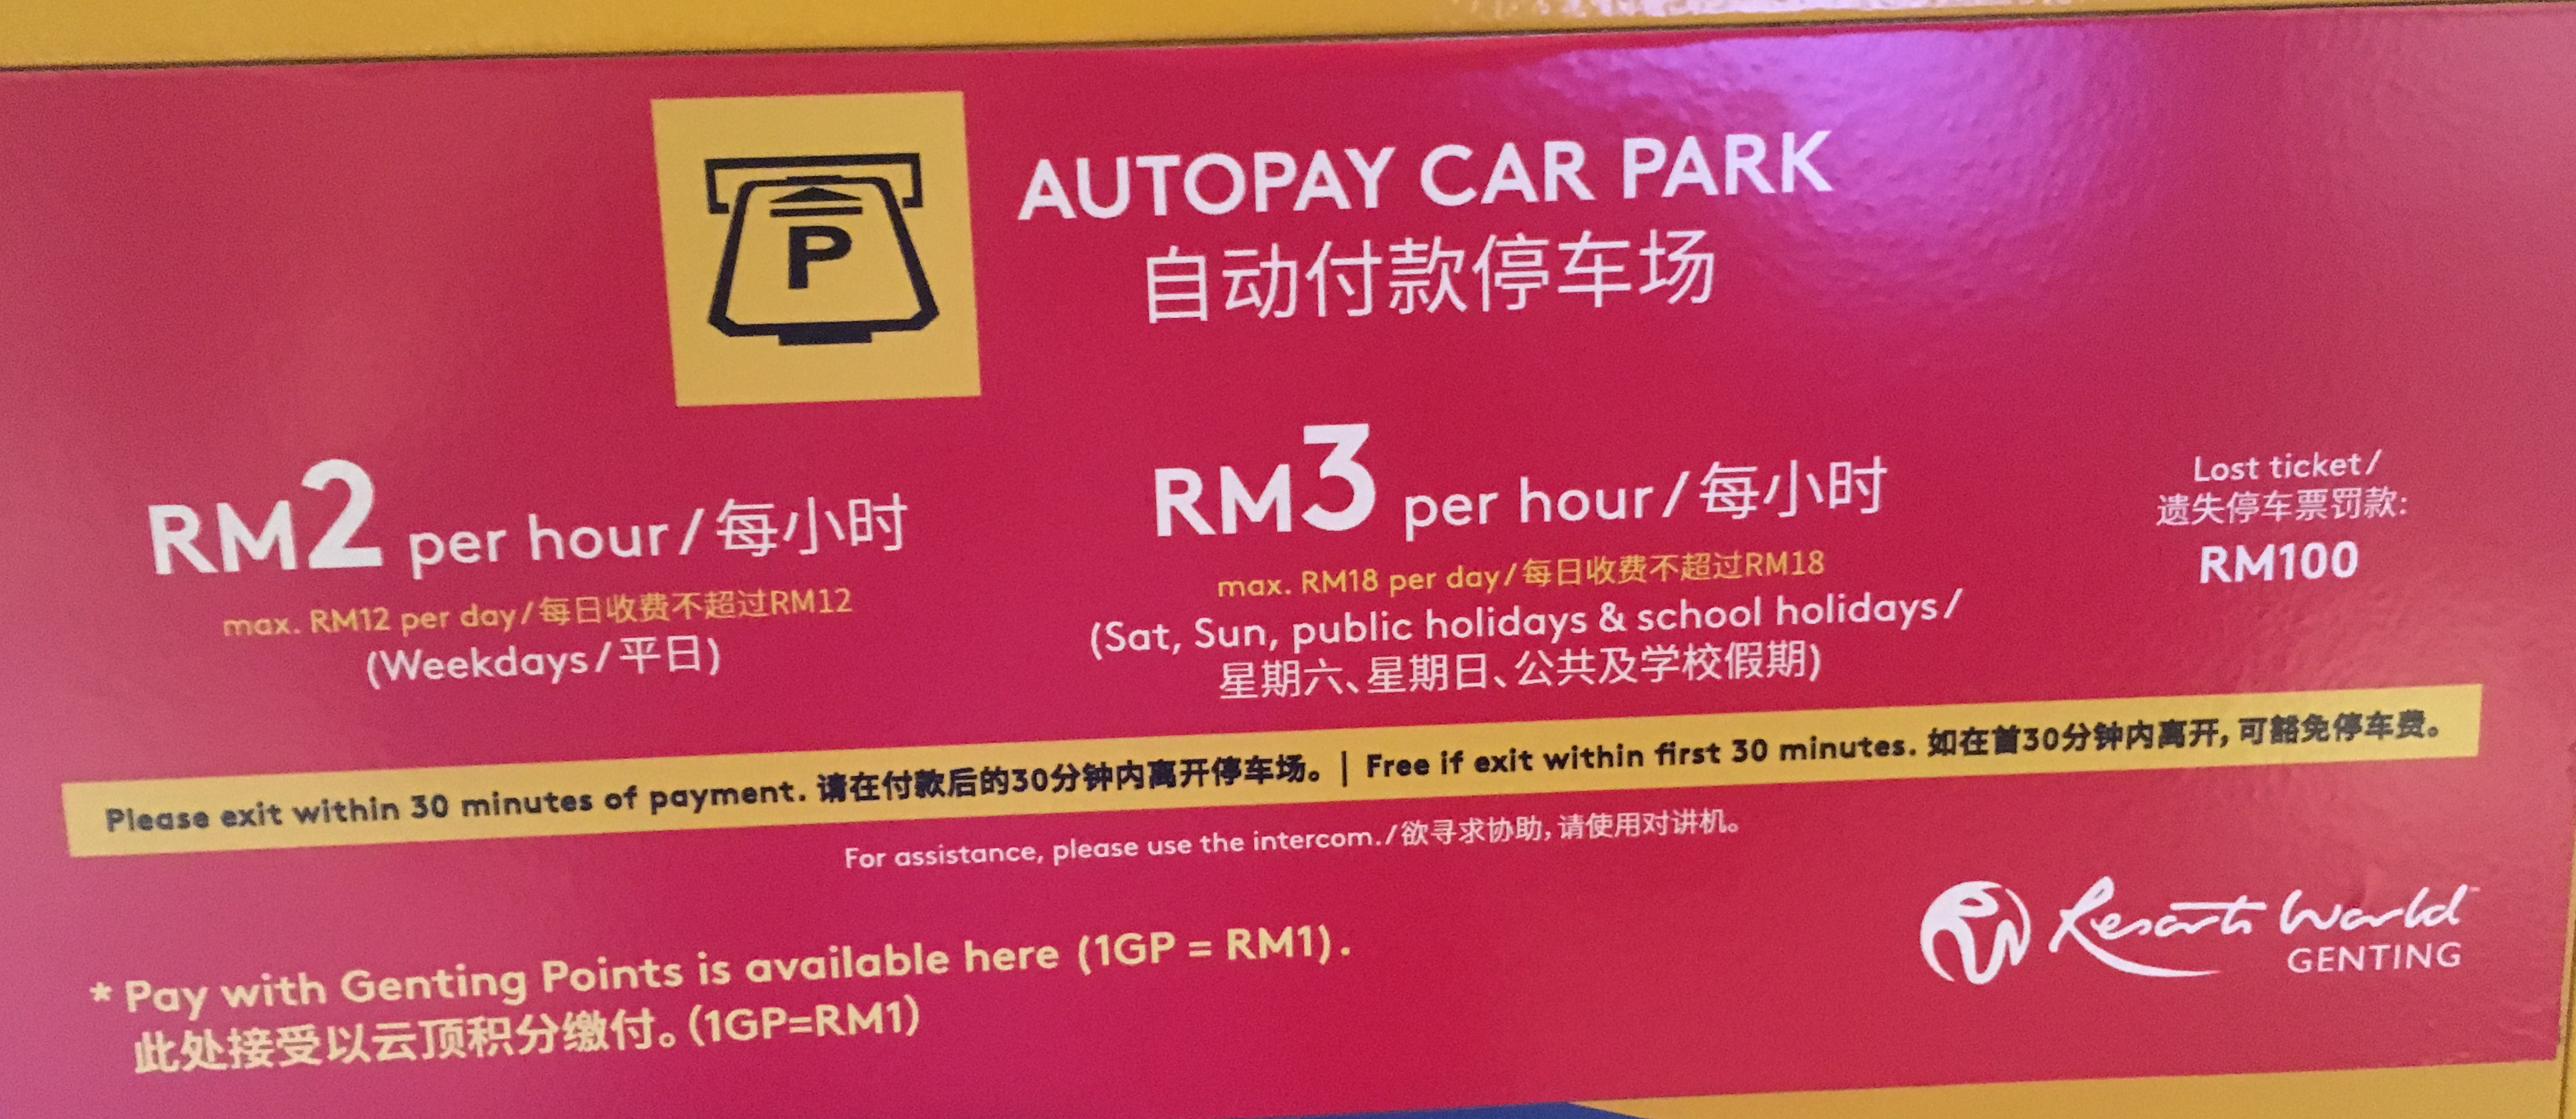 Resorts World Genting Parking Rate